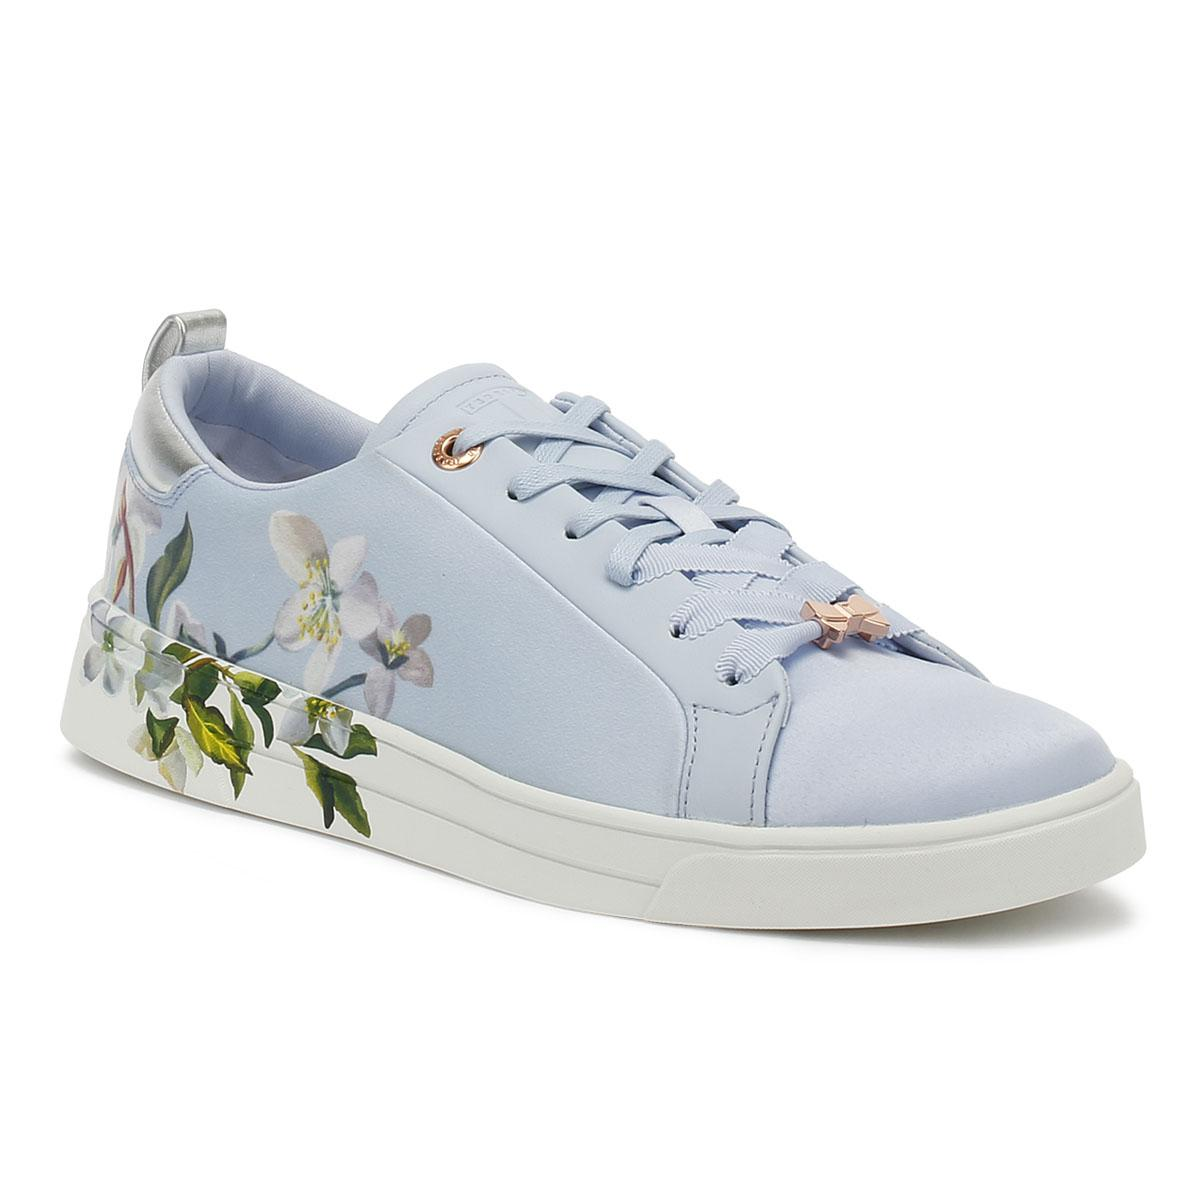 20962cd0f847 Ted Baker Orosa Womens Graceful Blue Satin Trainers in Blue - Lyst